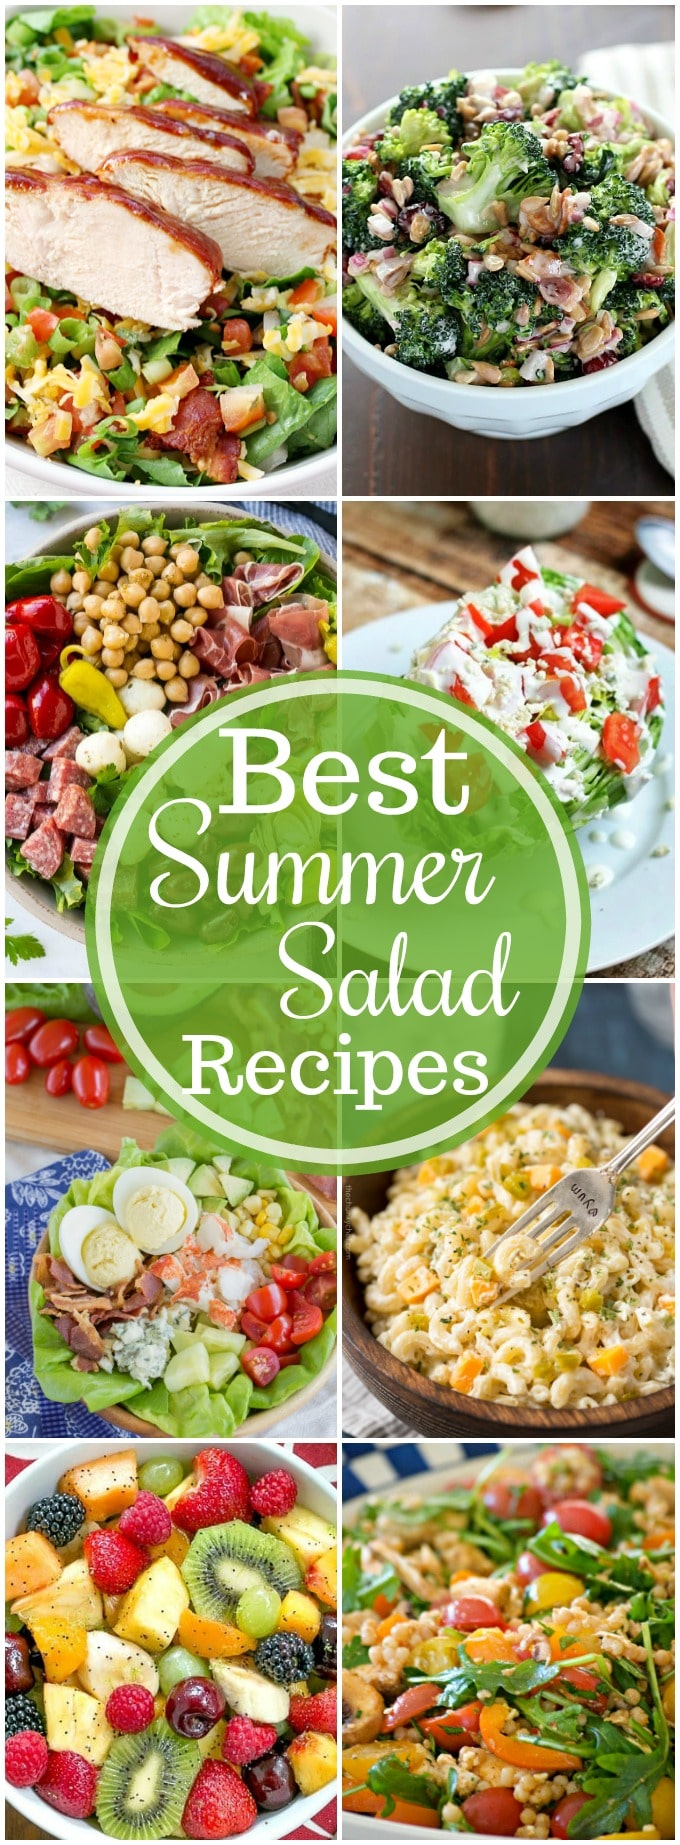 The BEST Summer Salad Recipes